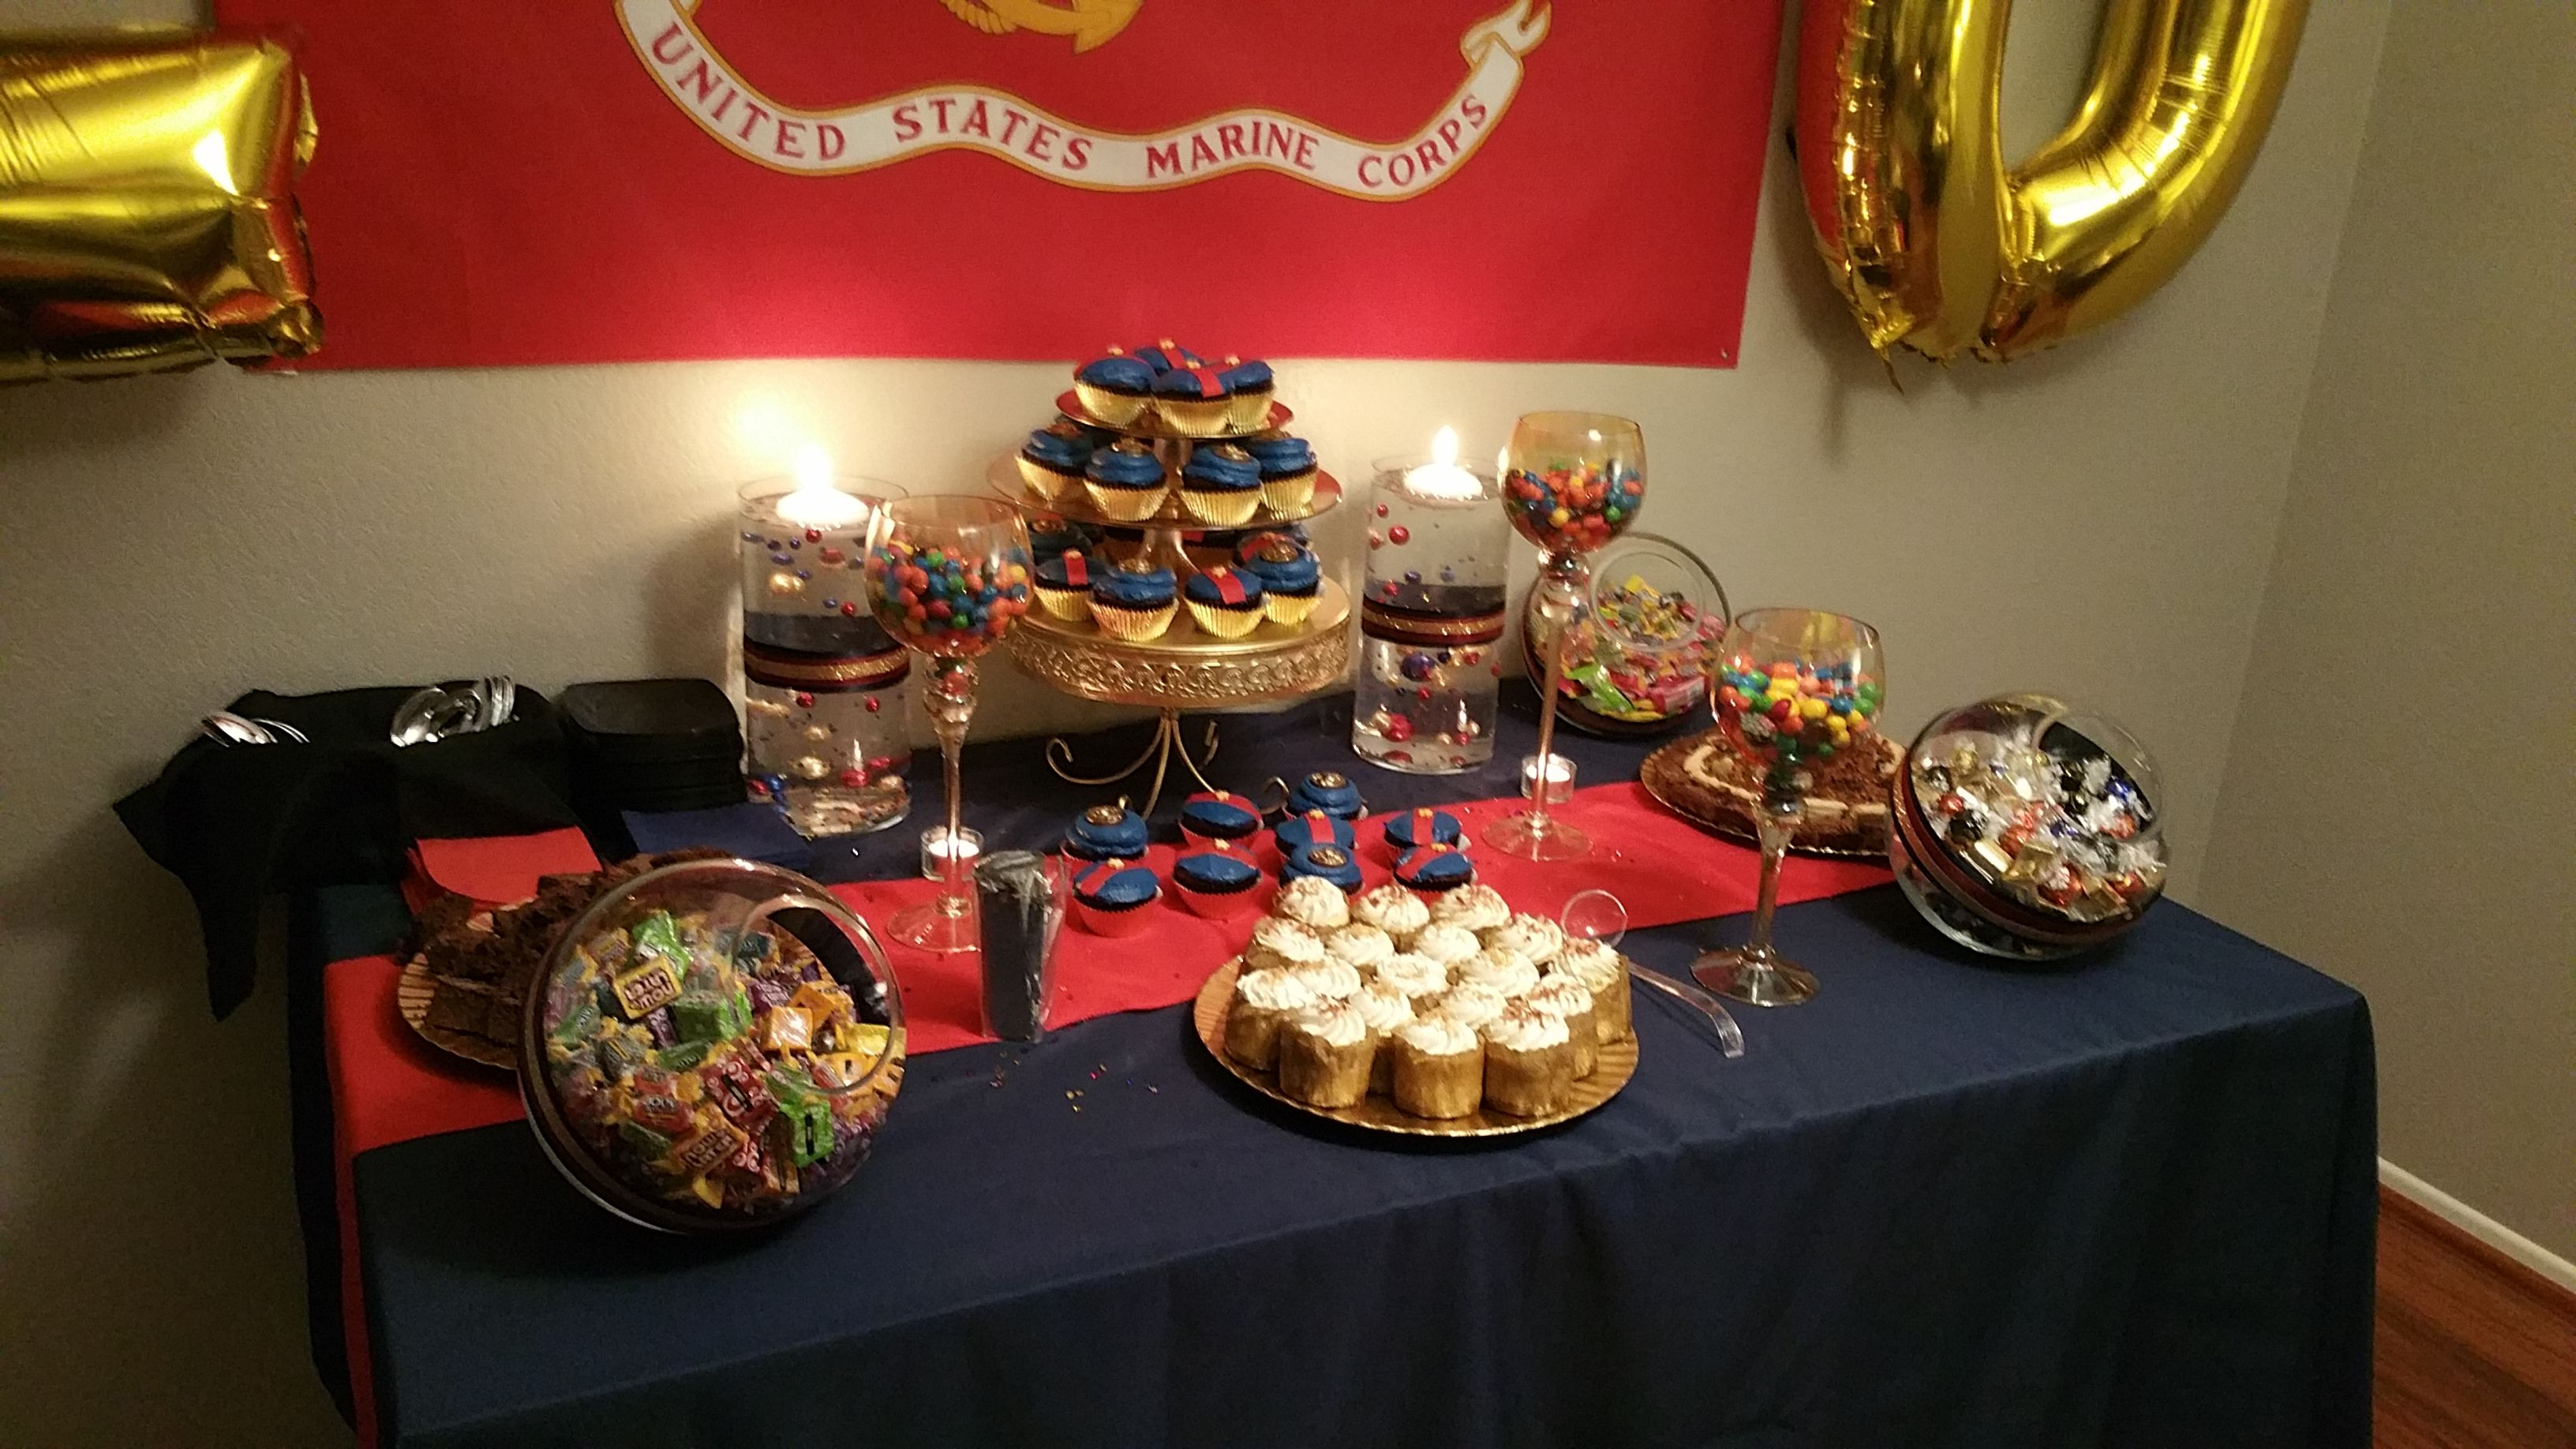 Dessert Table created for a Marine Corps Retirement event